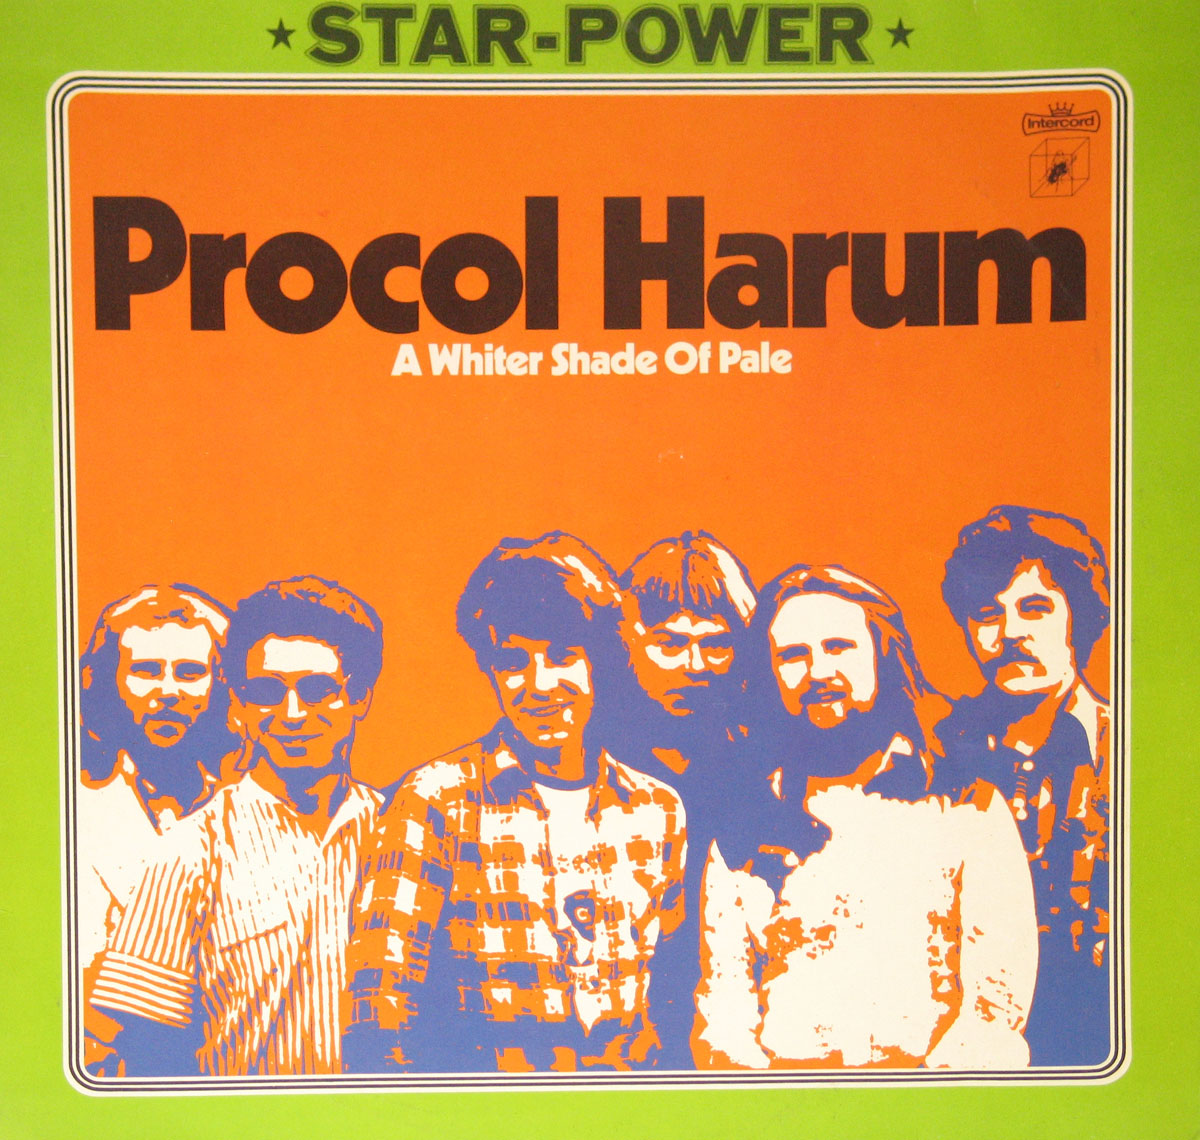 High Resolution Photo # Procol Harum Album Front Cover Vinyl Record